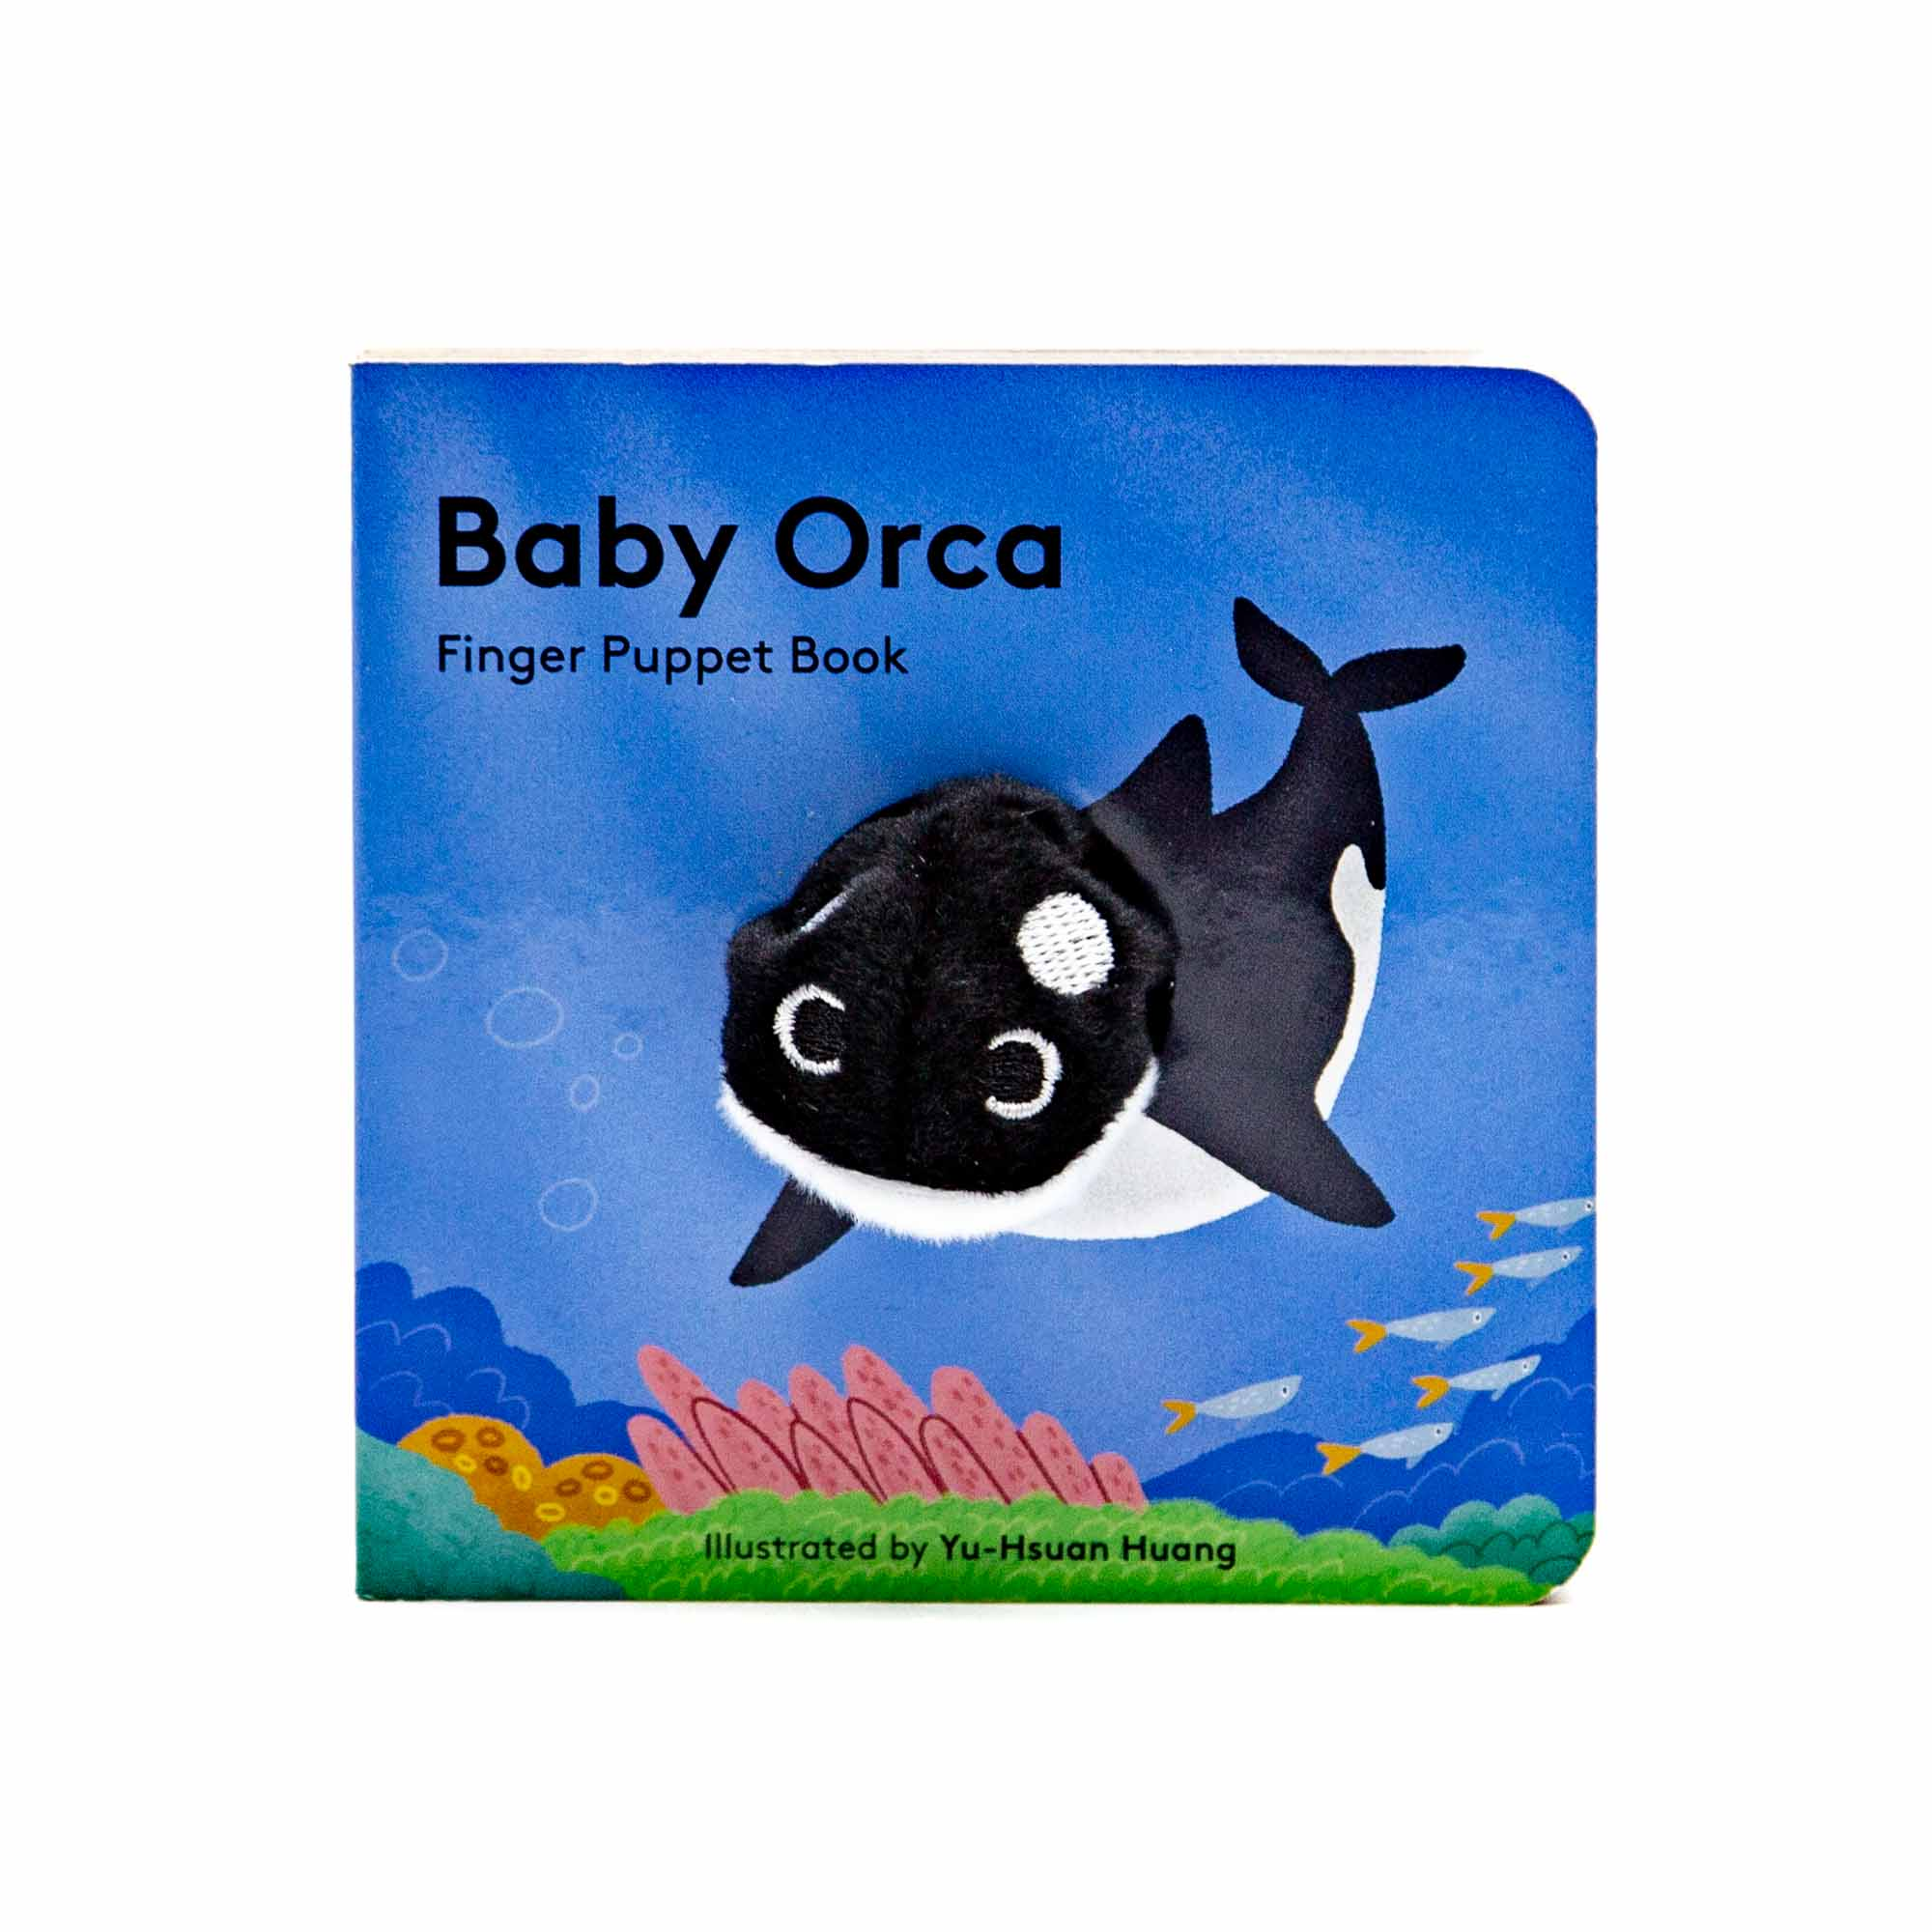 Baby Orca: Finger Puppet Book - Mortise And Tenon